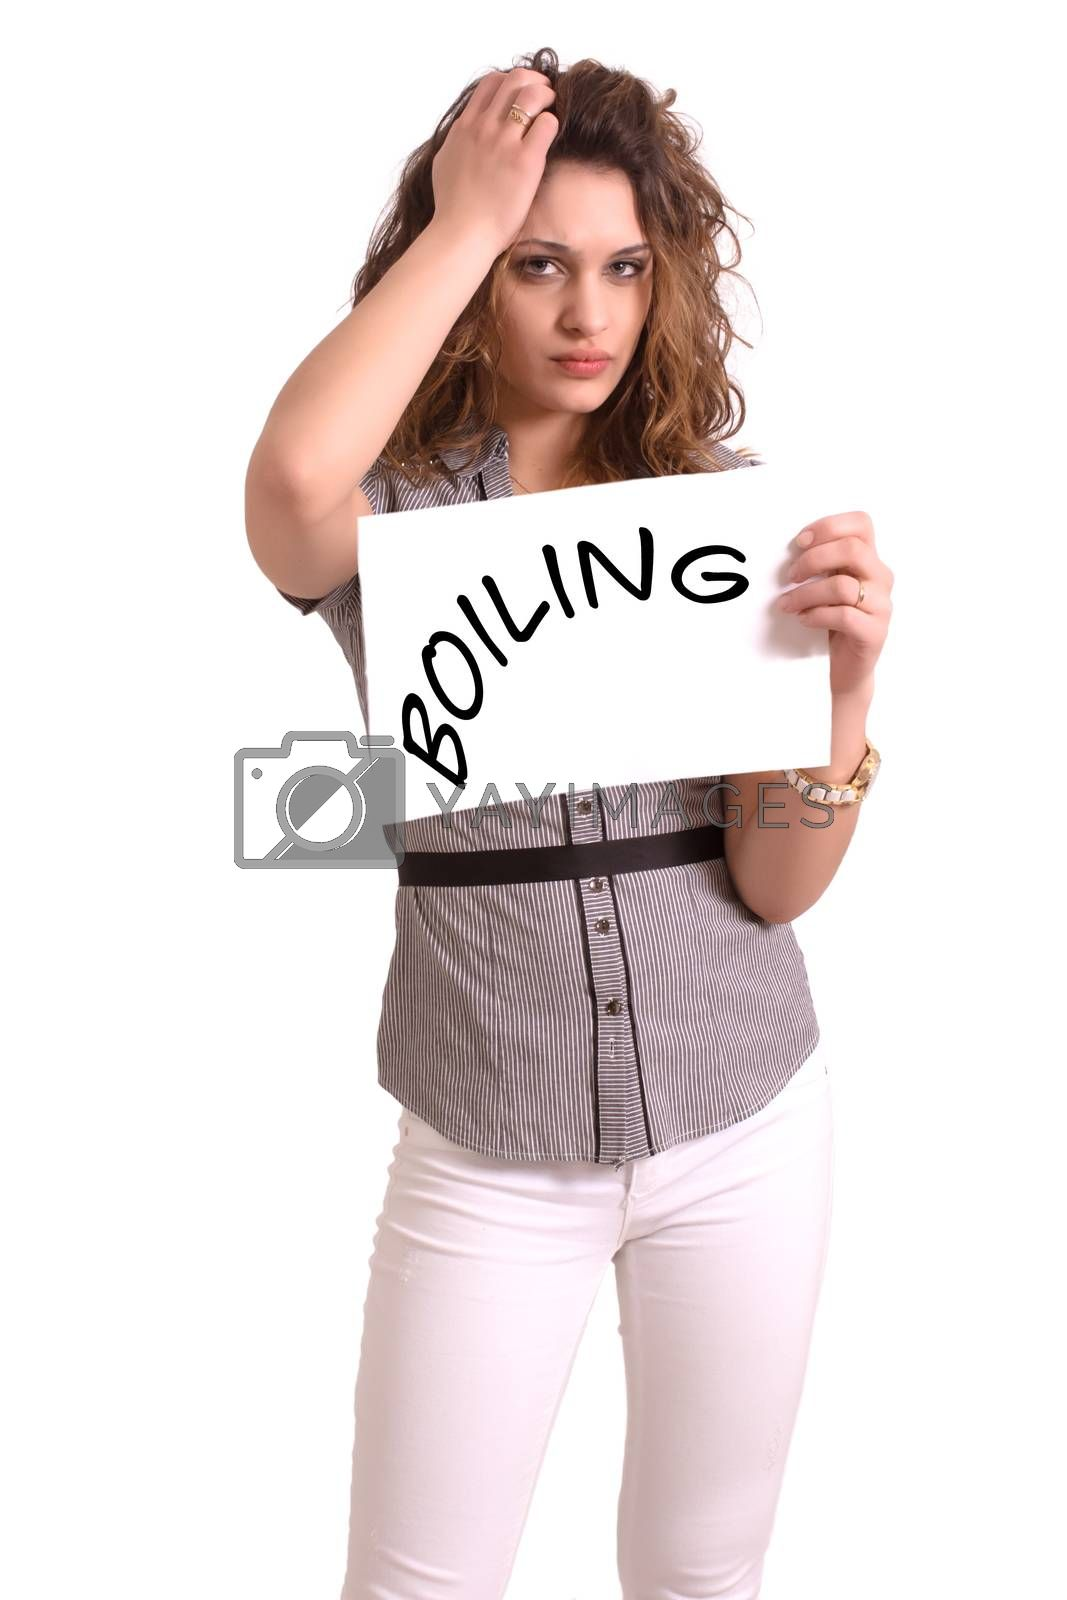 Young attractive woman holding paper with Boiling text on white background